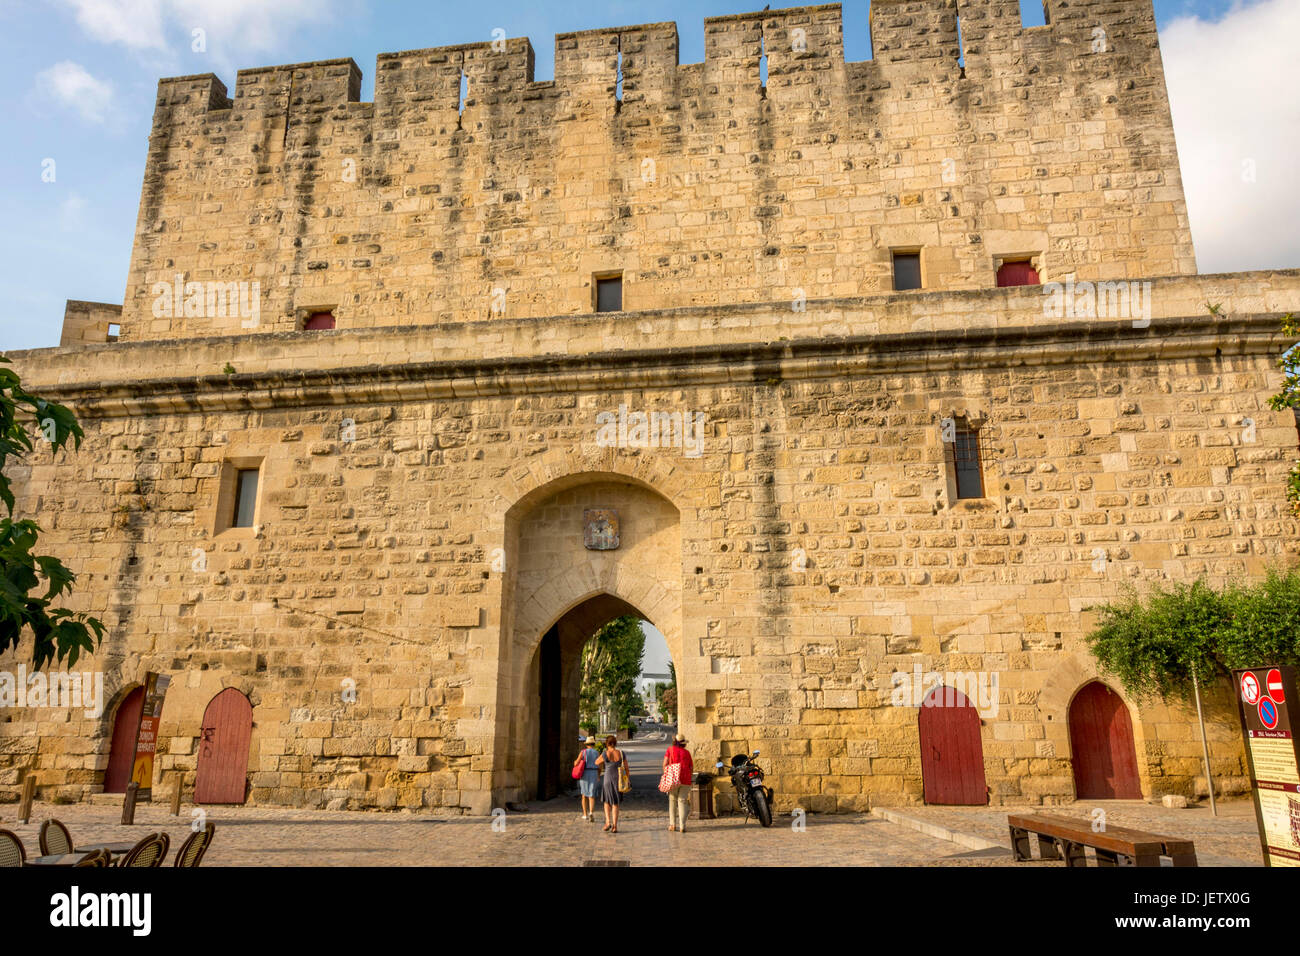 Gardette door of city wall of the medieval town of Aigues-Mortes.Gard. France - Stock Image